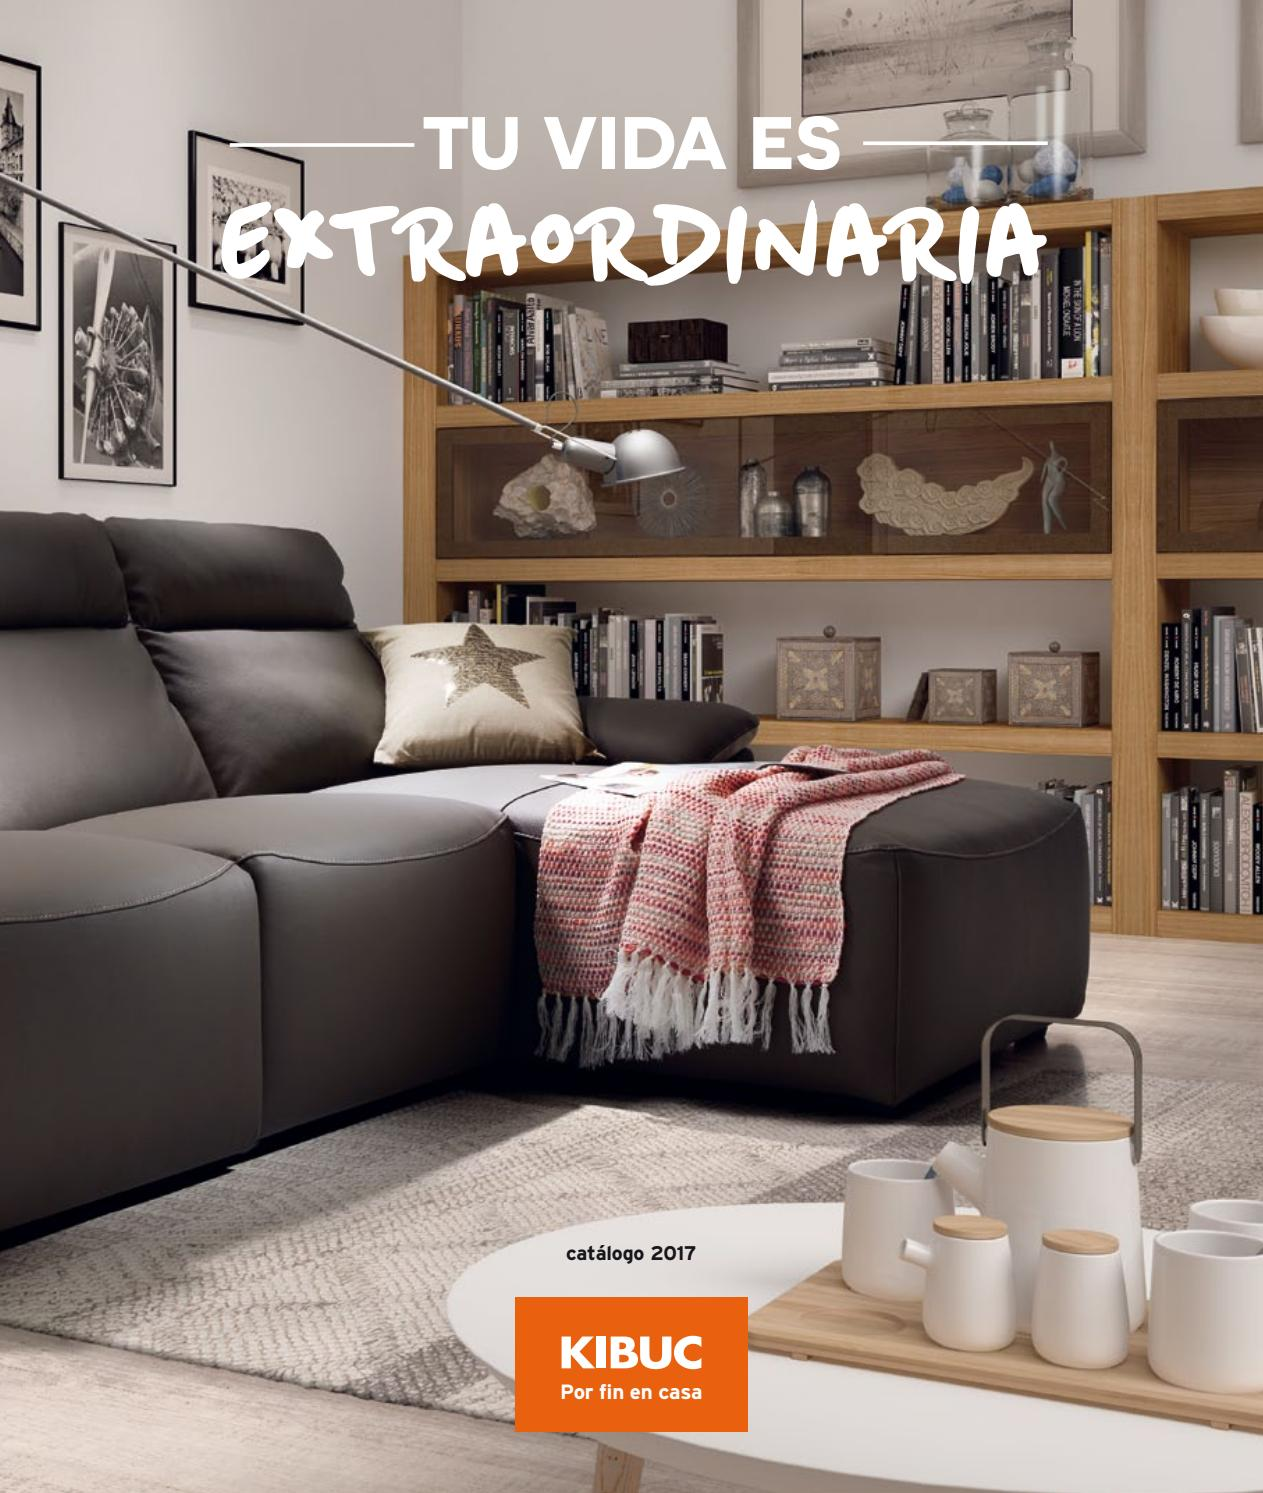 Muebles Hermanos Mora Kibuc Catalogo General 2016 17 By Kibuc Issuu